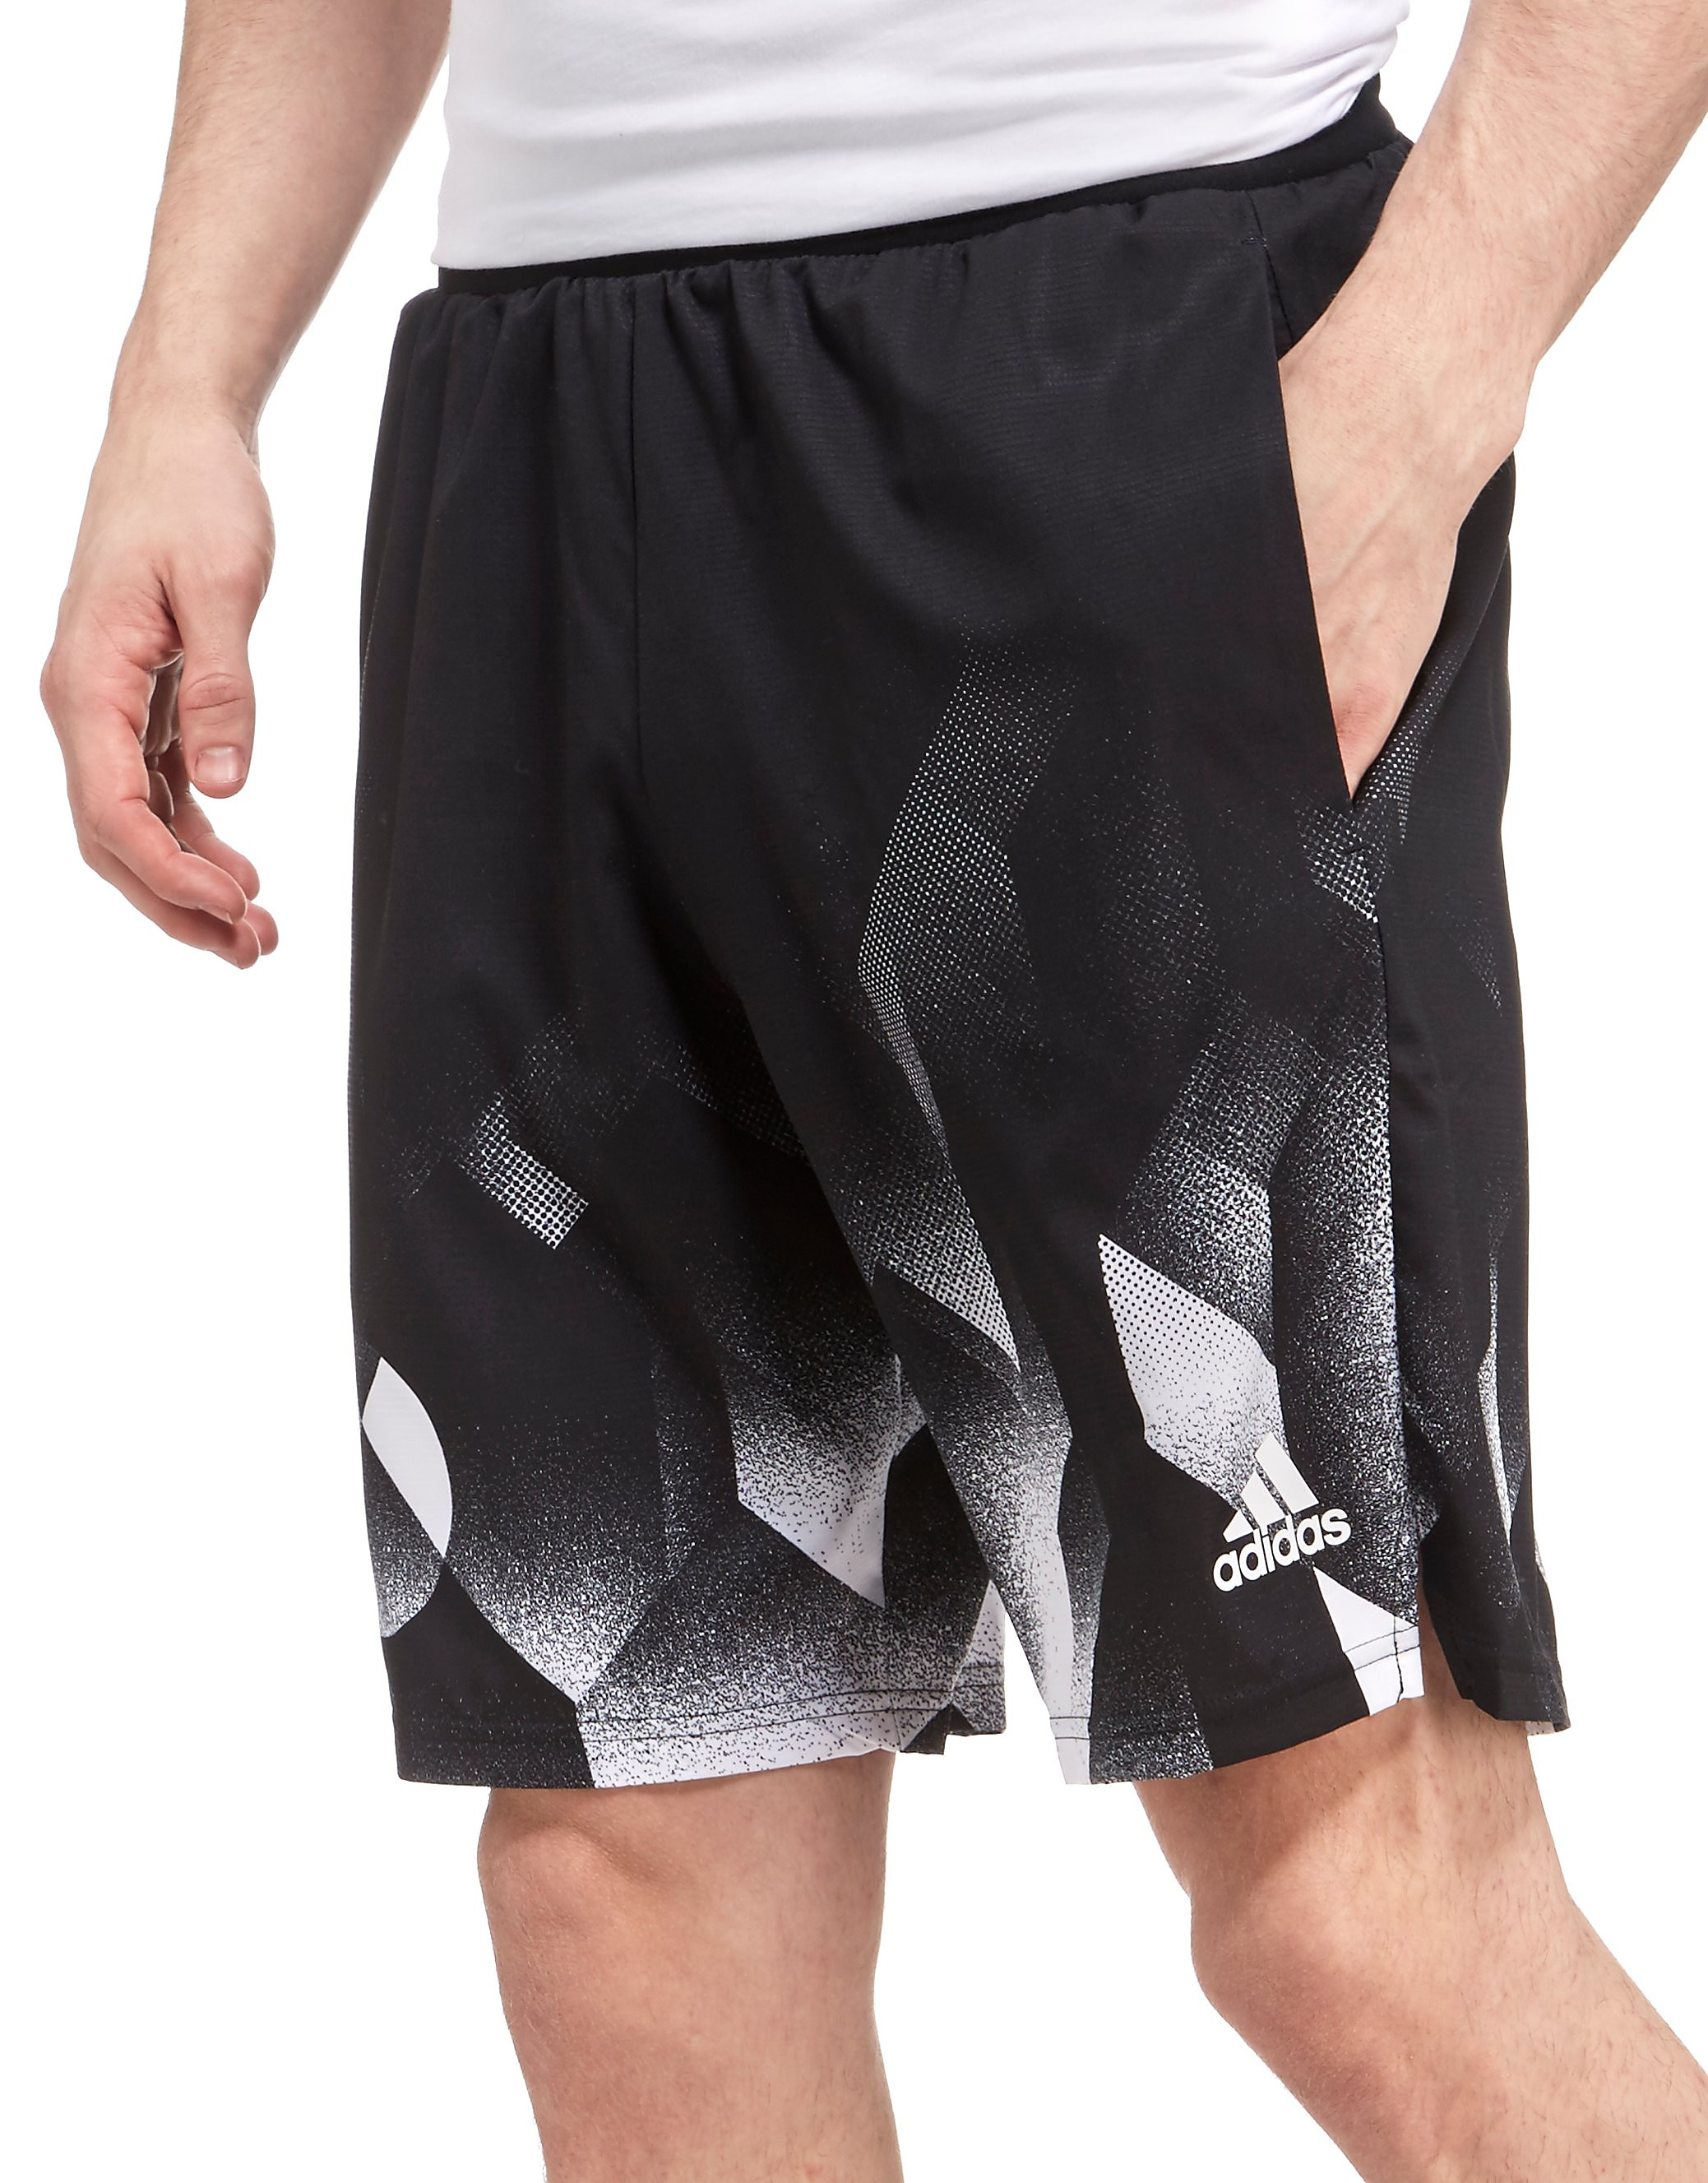 adidas Tango Future Graphic Shorts